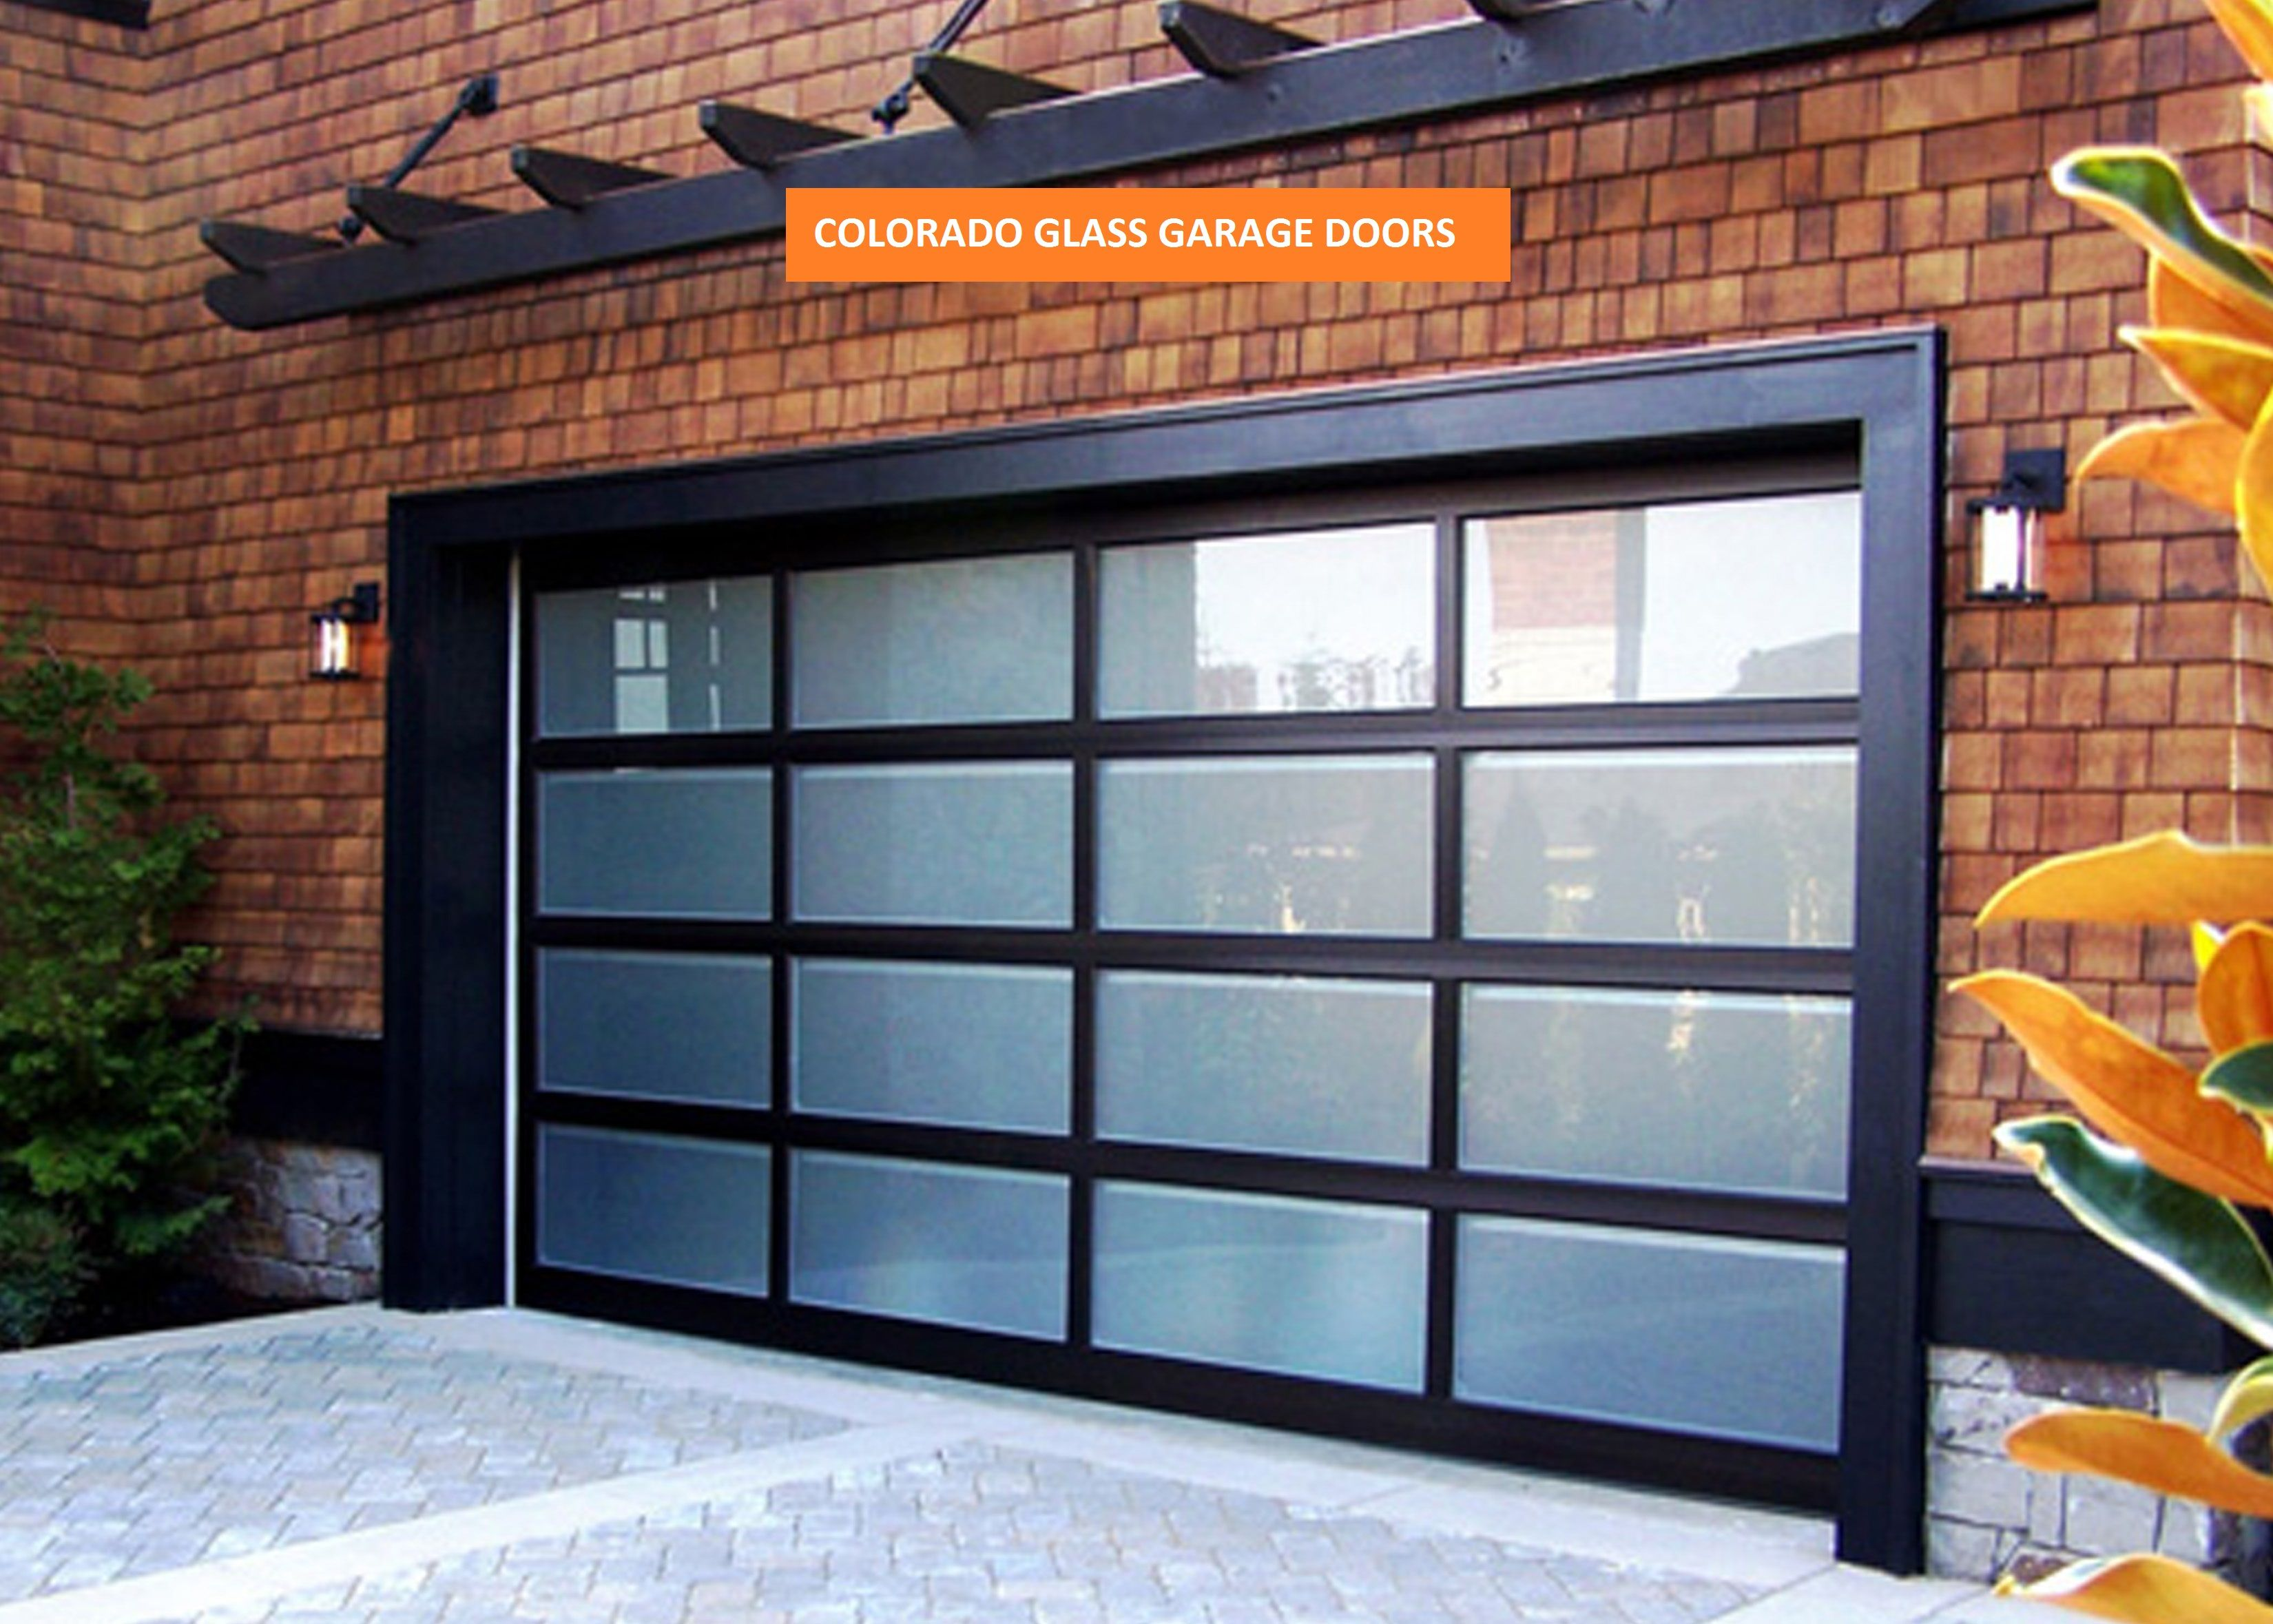 COLORADO GLASS GARAGE DOORS. Arm R Lite Is The Most Trusted Name In Colorado  Glass Garage Doors. All Our Models Are Fabricated In The United States Of  ...